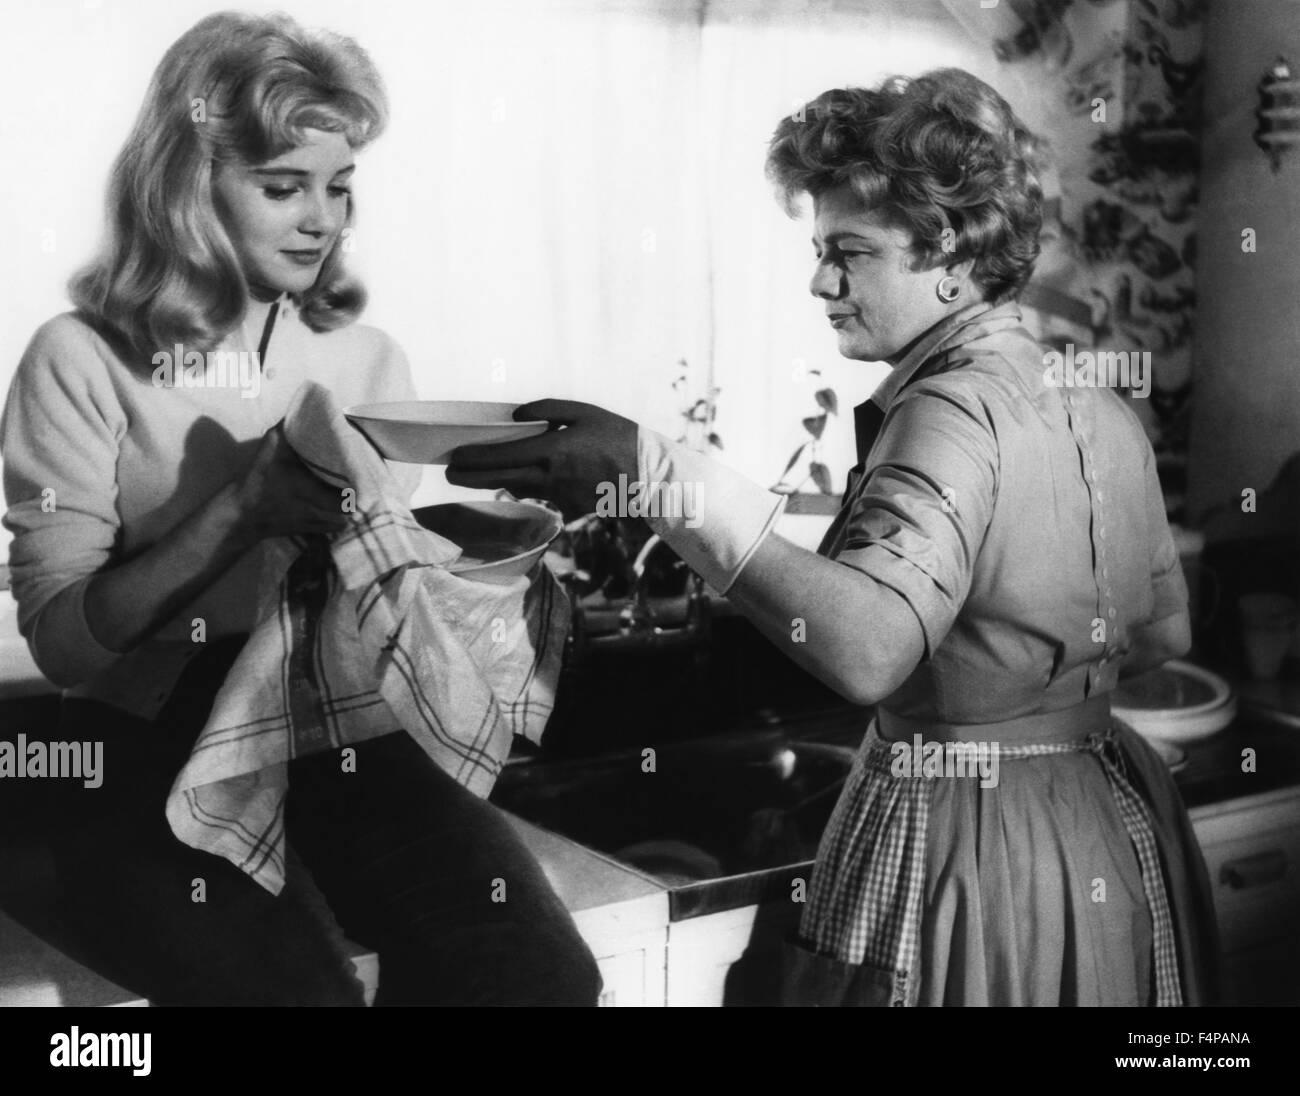 Sue Lyon, Shelley Winters / Lolita 1962 directed by Stanley Kubrick - Stock Image